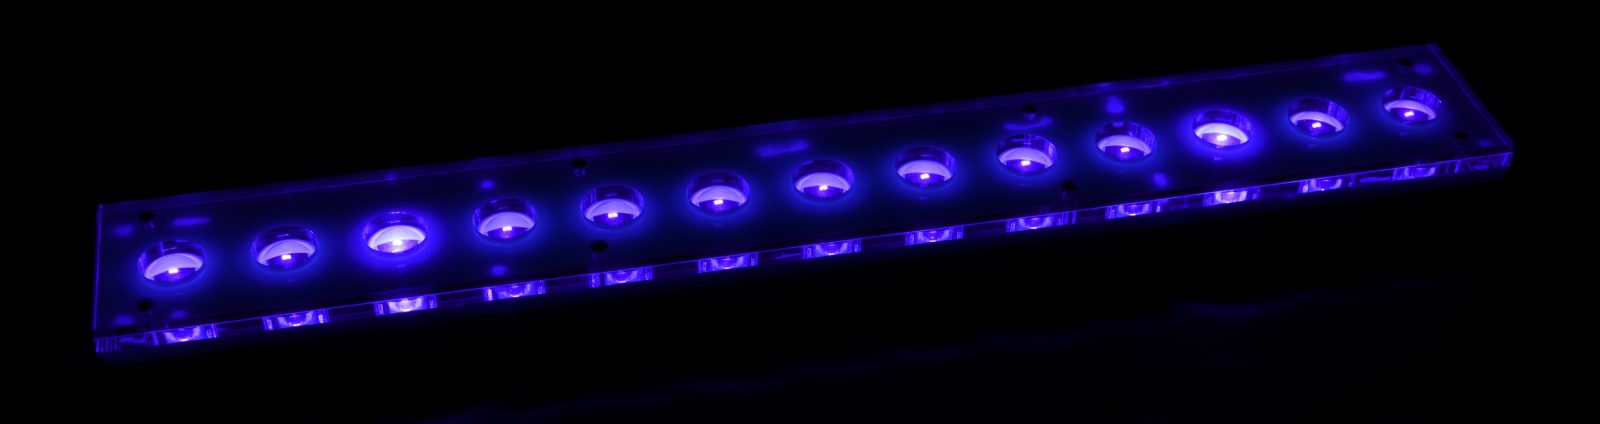 Super Slim Line LED blu-viola